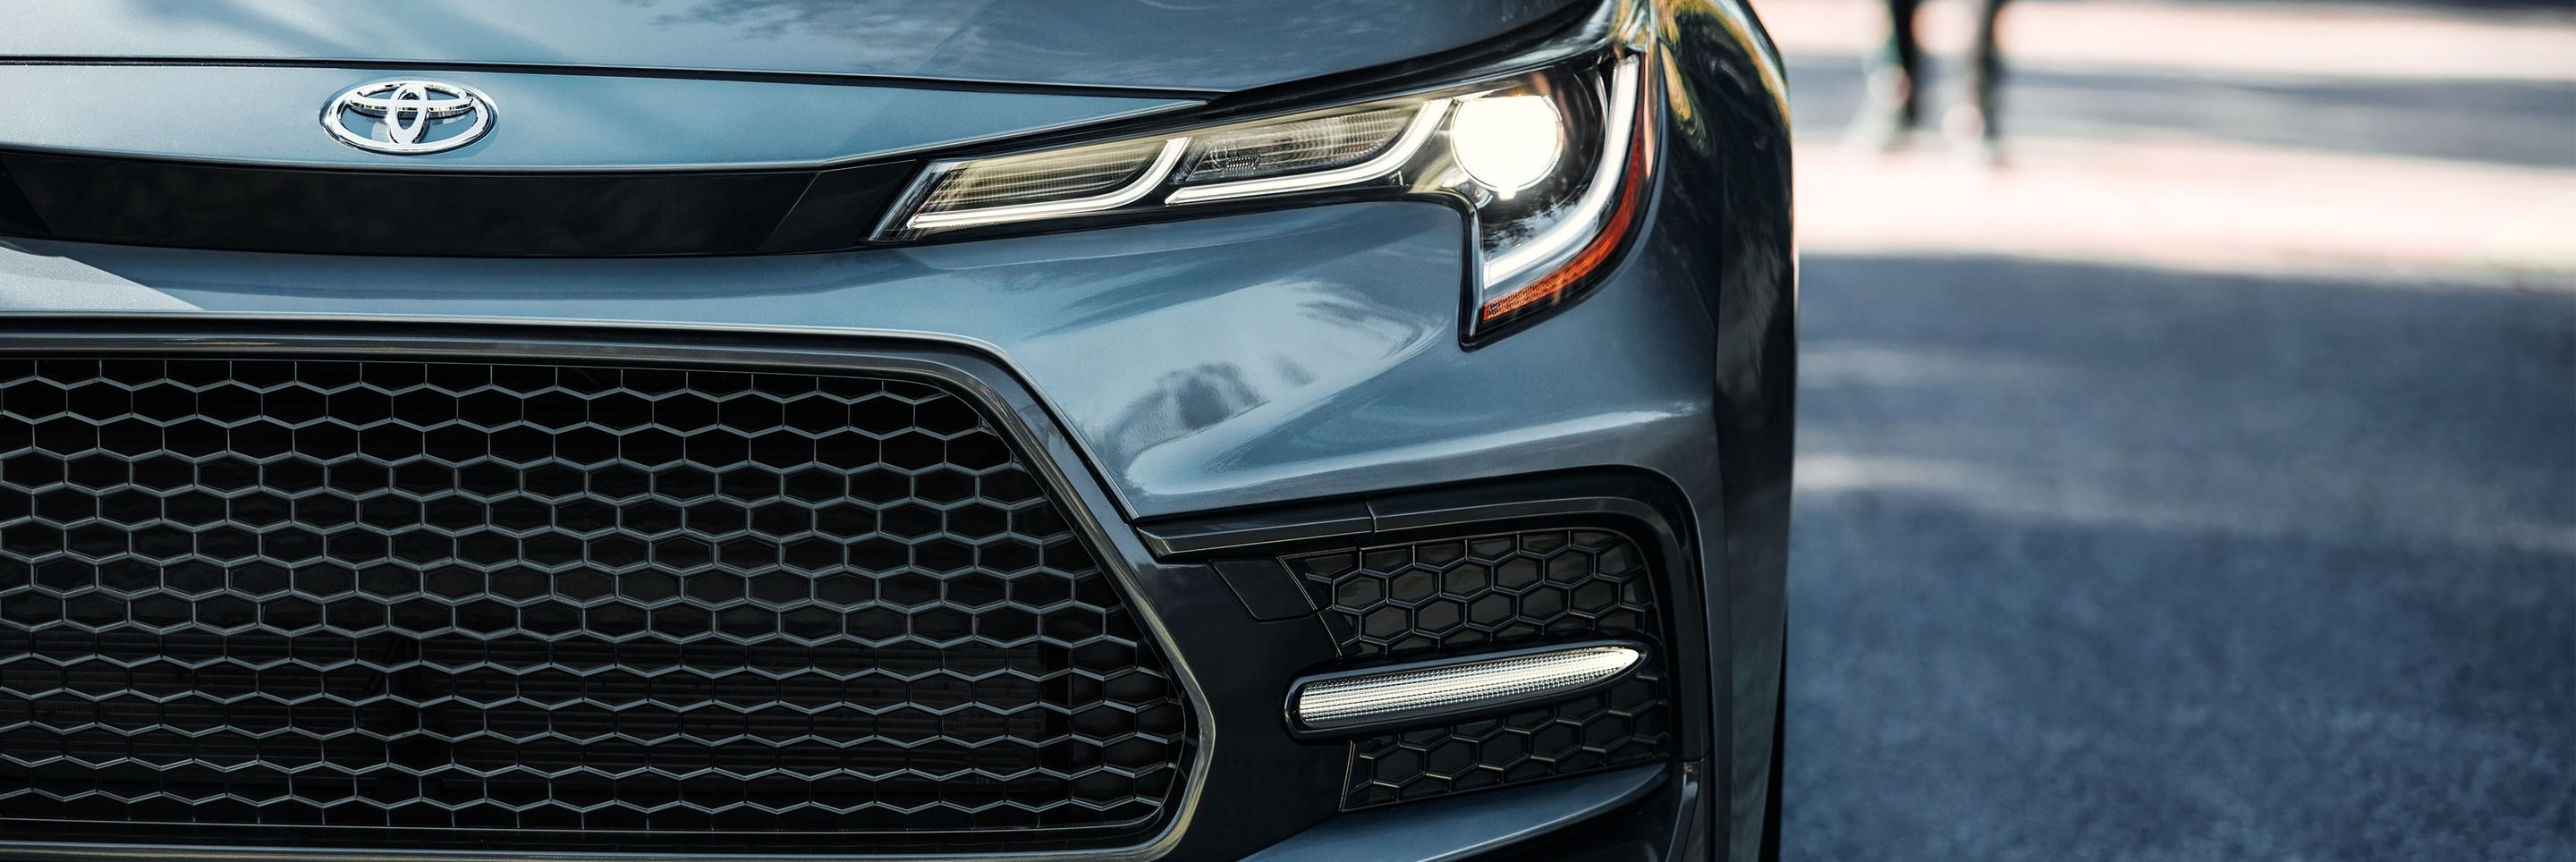 Standard LED Headlights of the 2020 Corolla